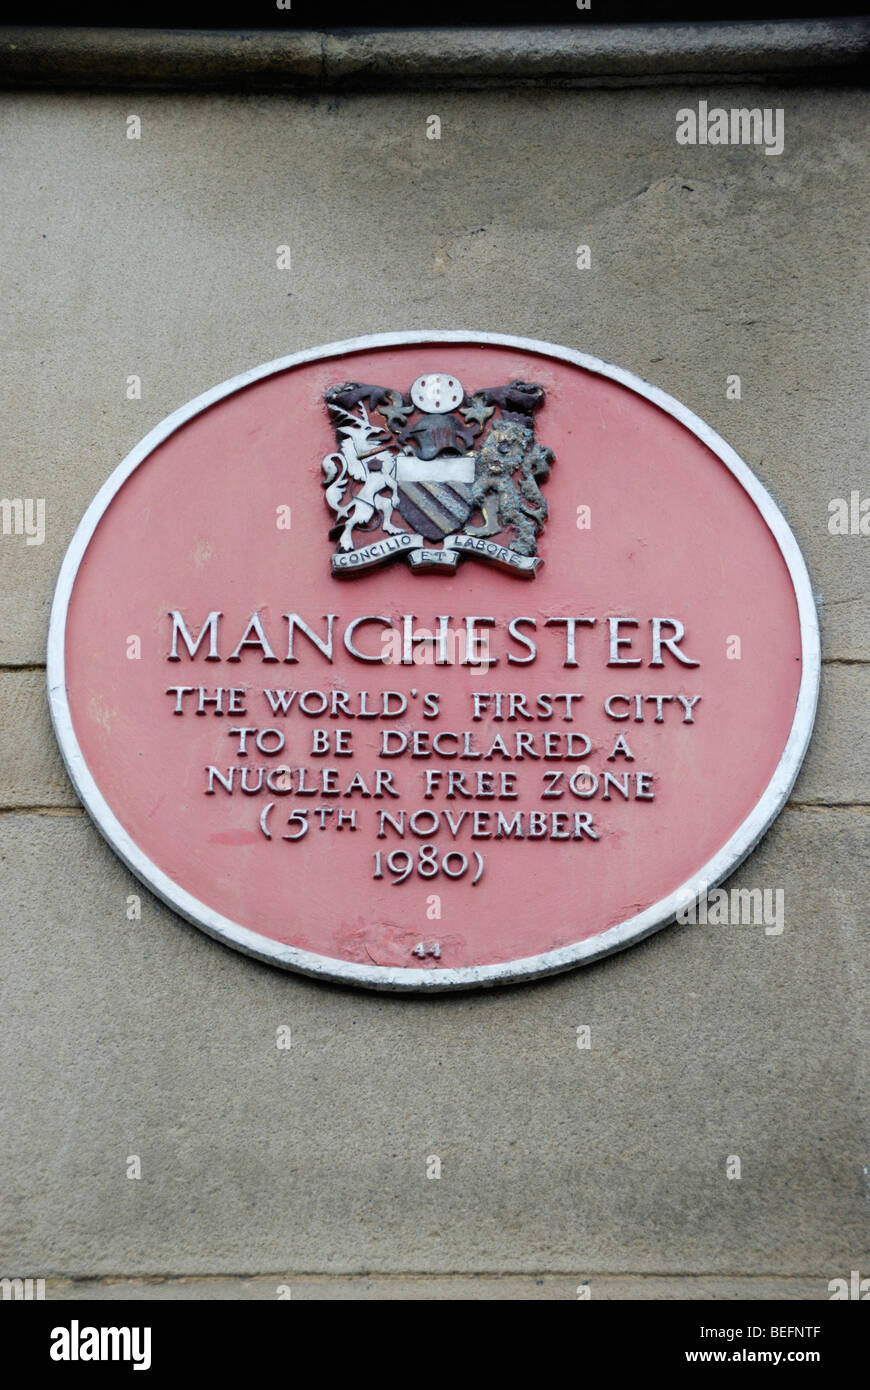 Plaque celebrating Manchester's status as the world's first city to be declared a nuclear free zone - Stock Image